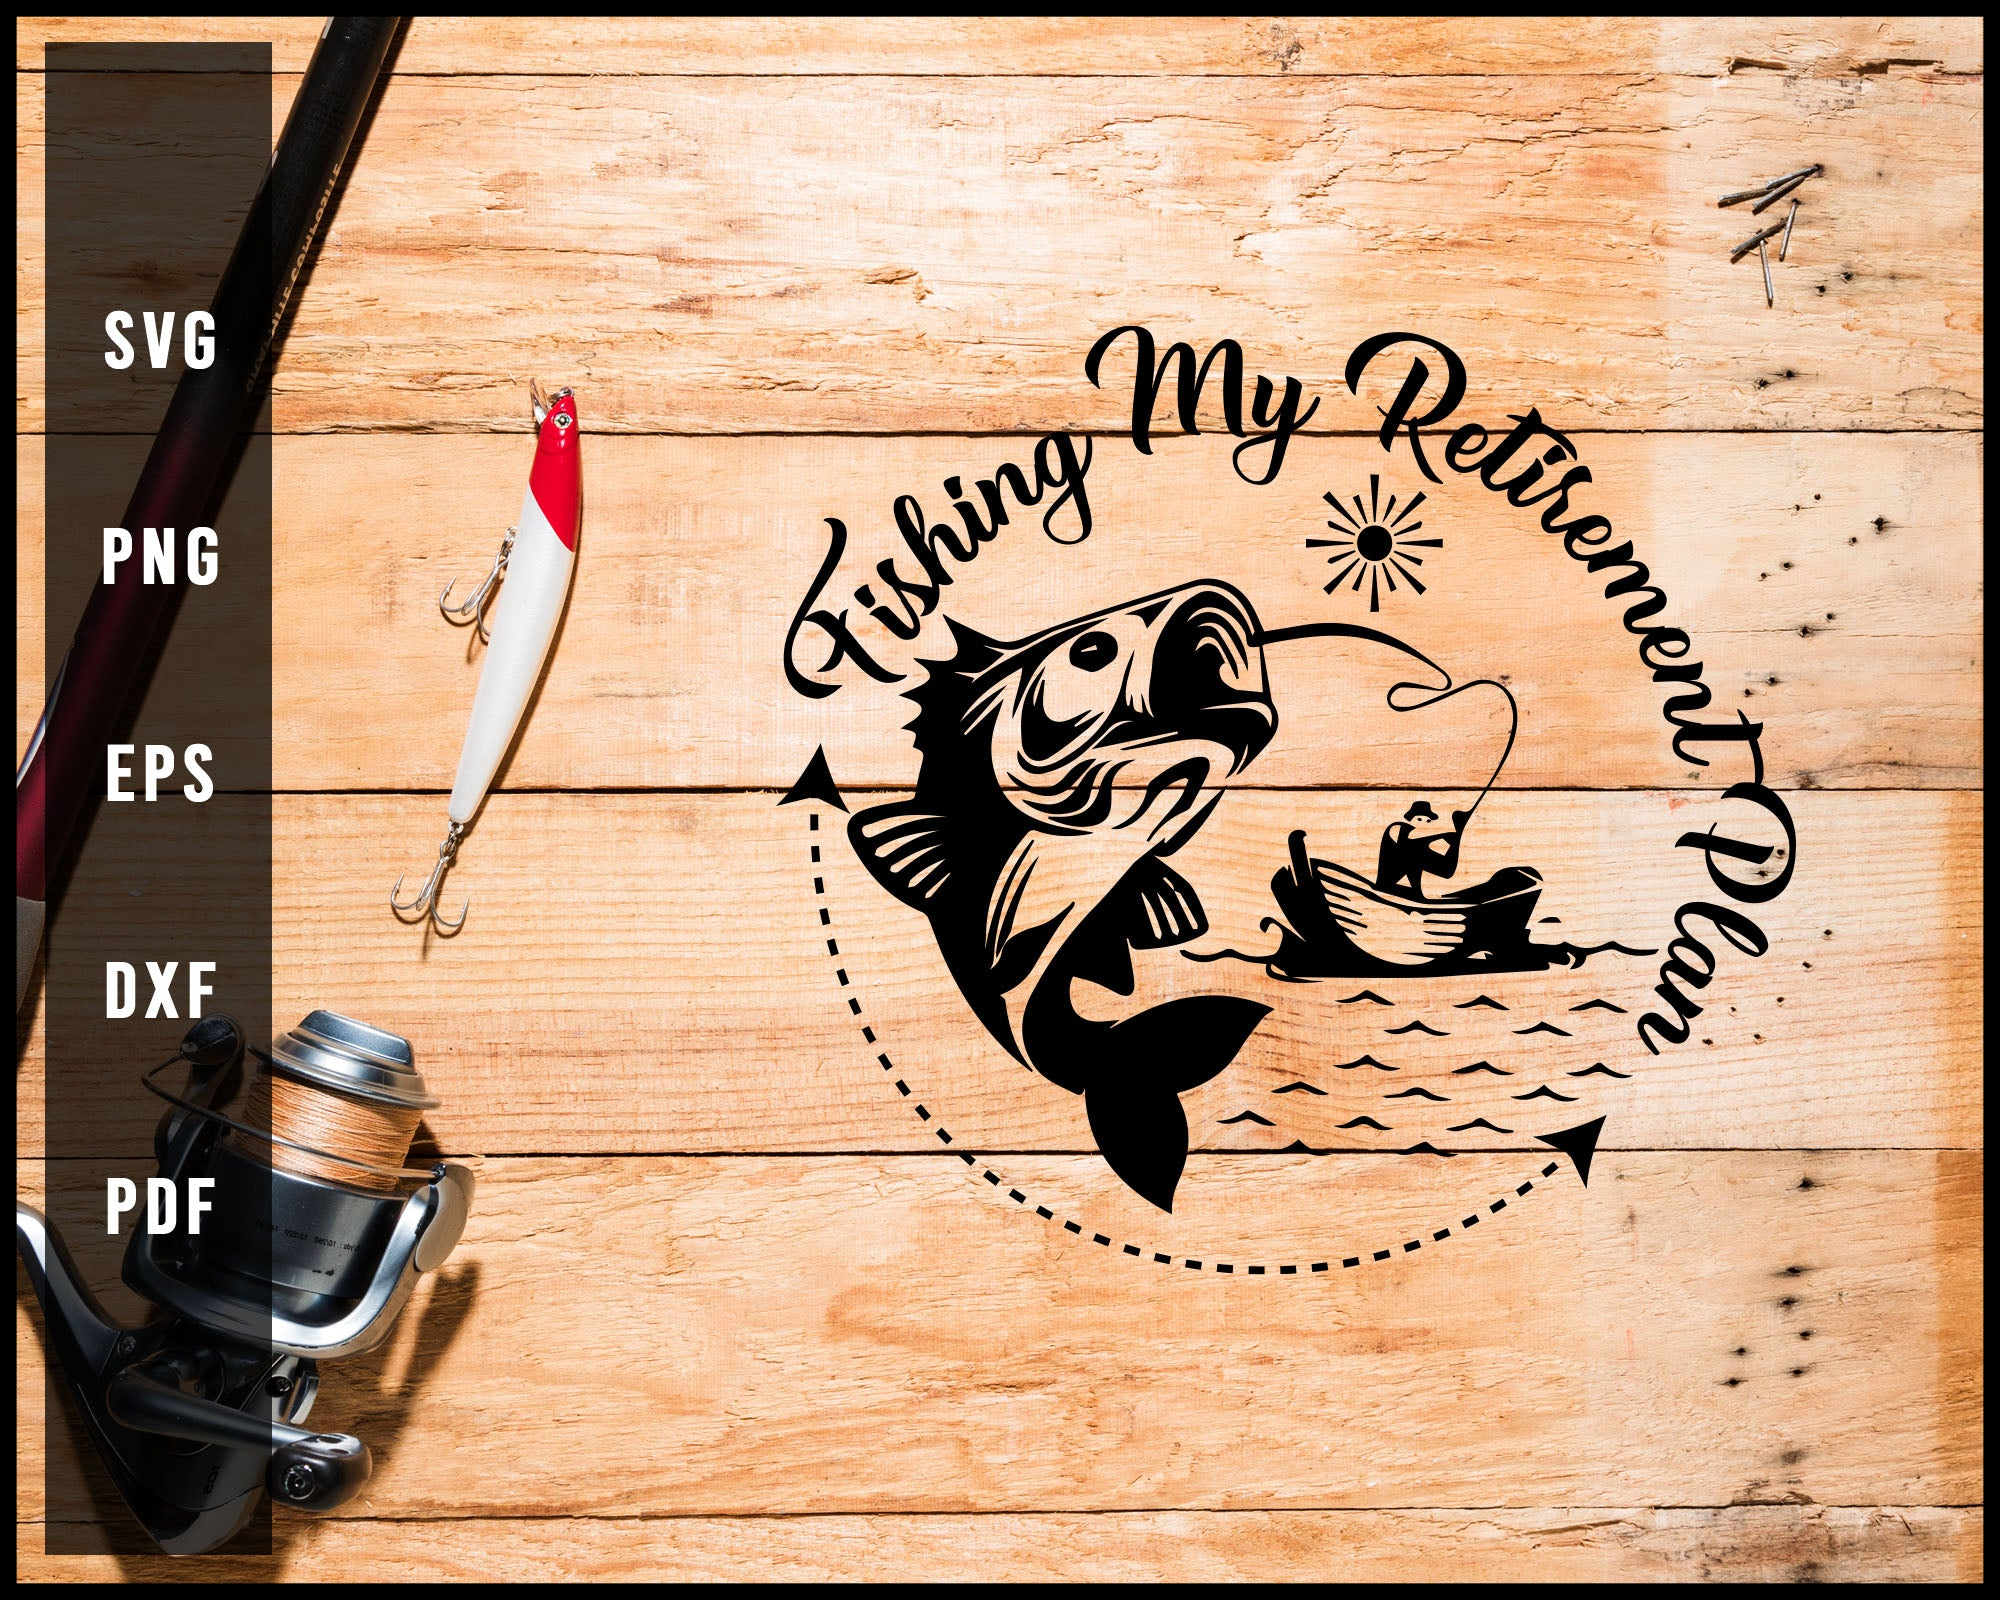 Fishing My Retiremen Plan svg png Silhouette Designs For Cricut And Printable Files